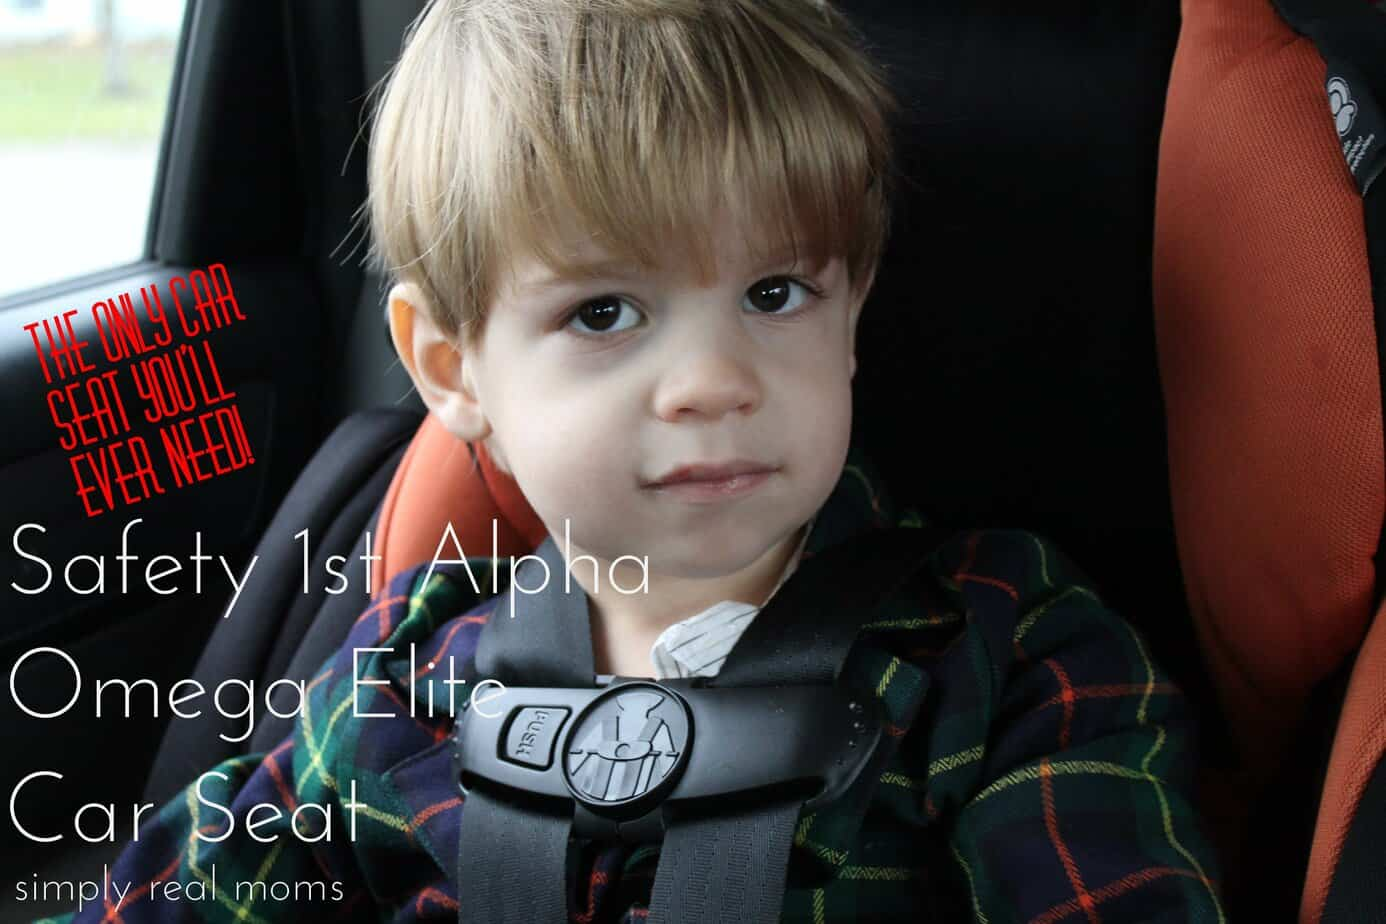 Safety 1st Alpha Omega Elite Car Seat The Only Car Seat You Ll Ever Need